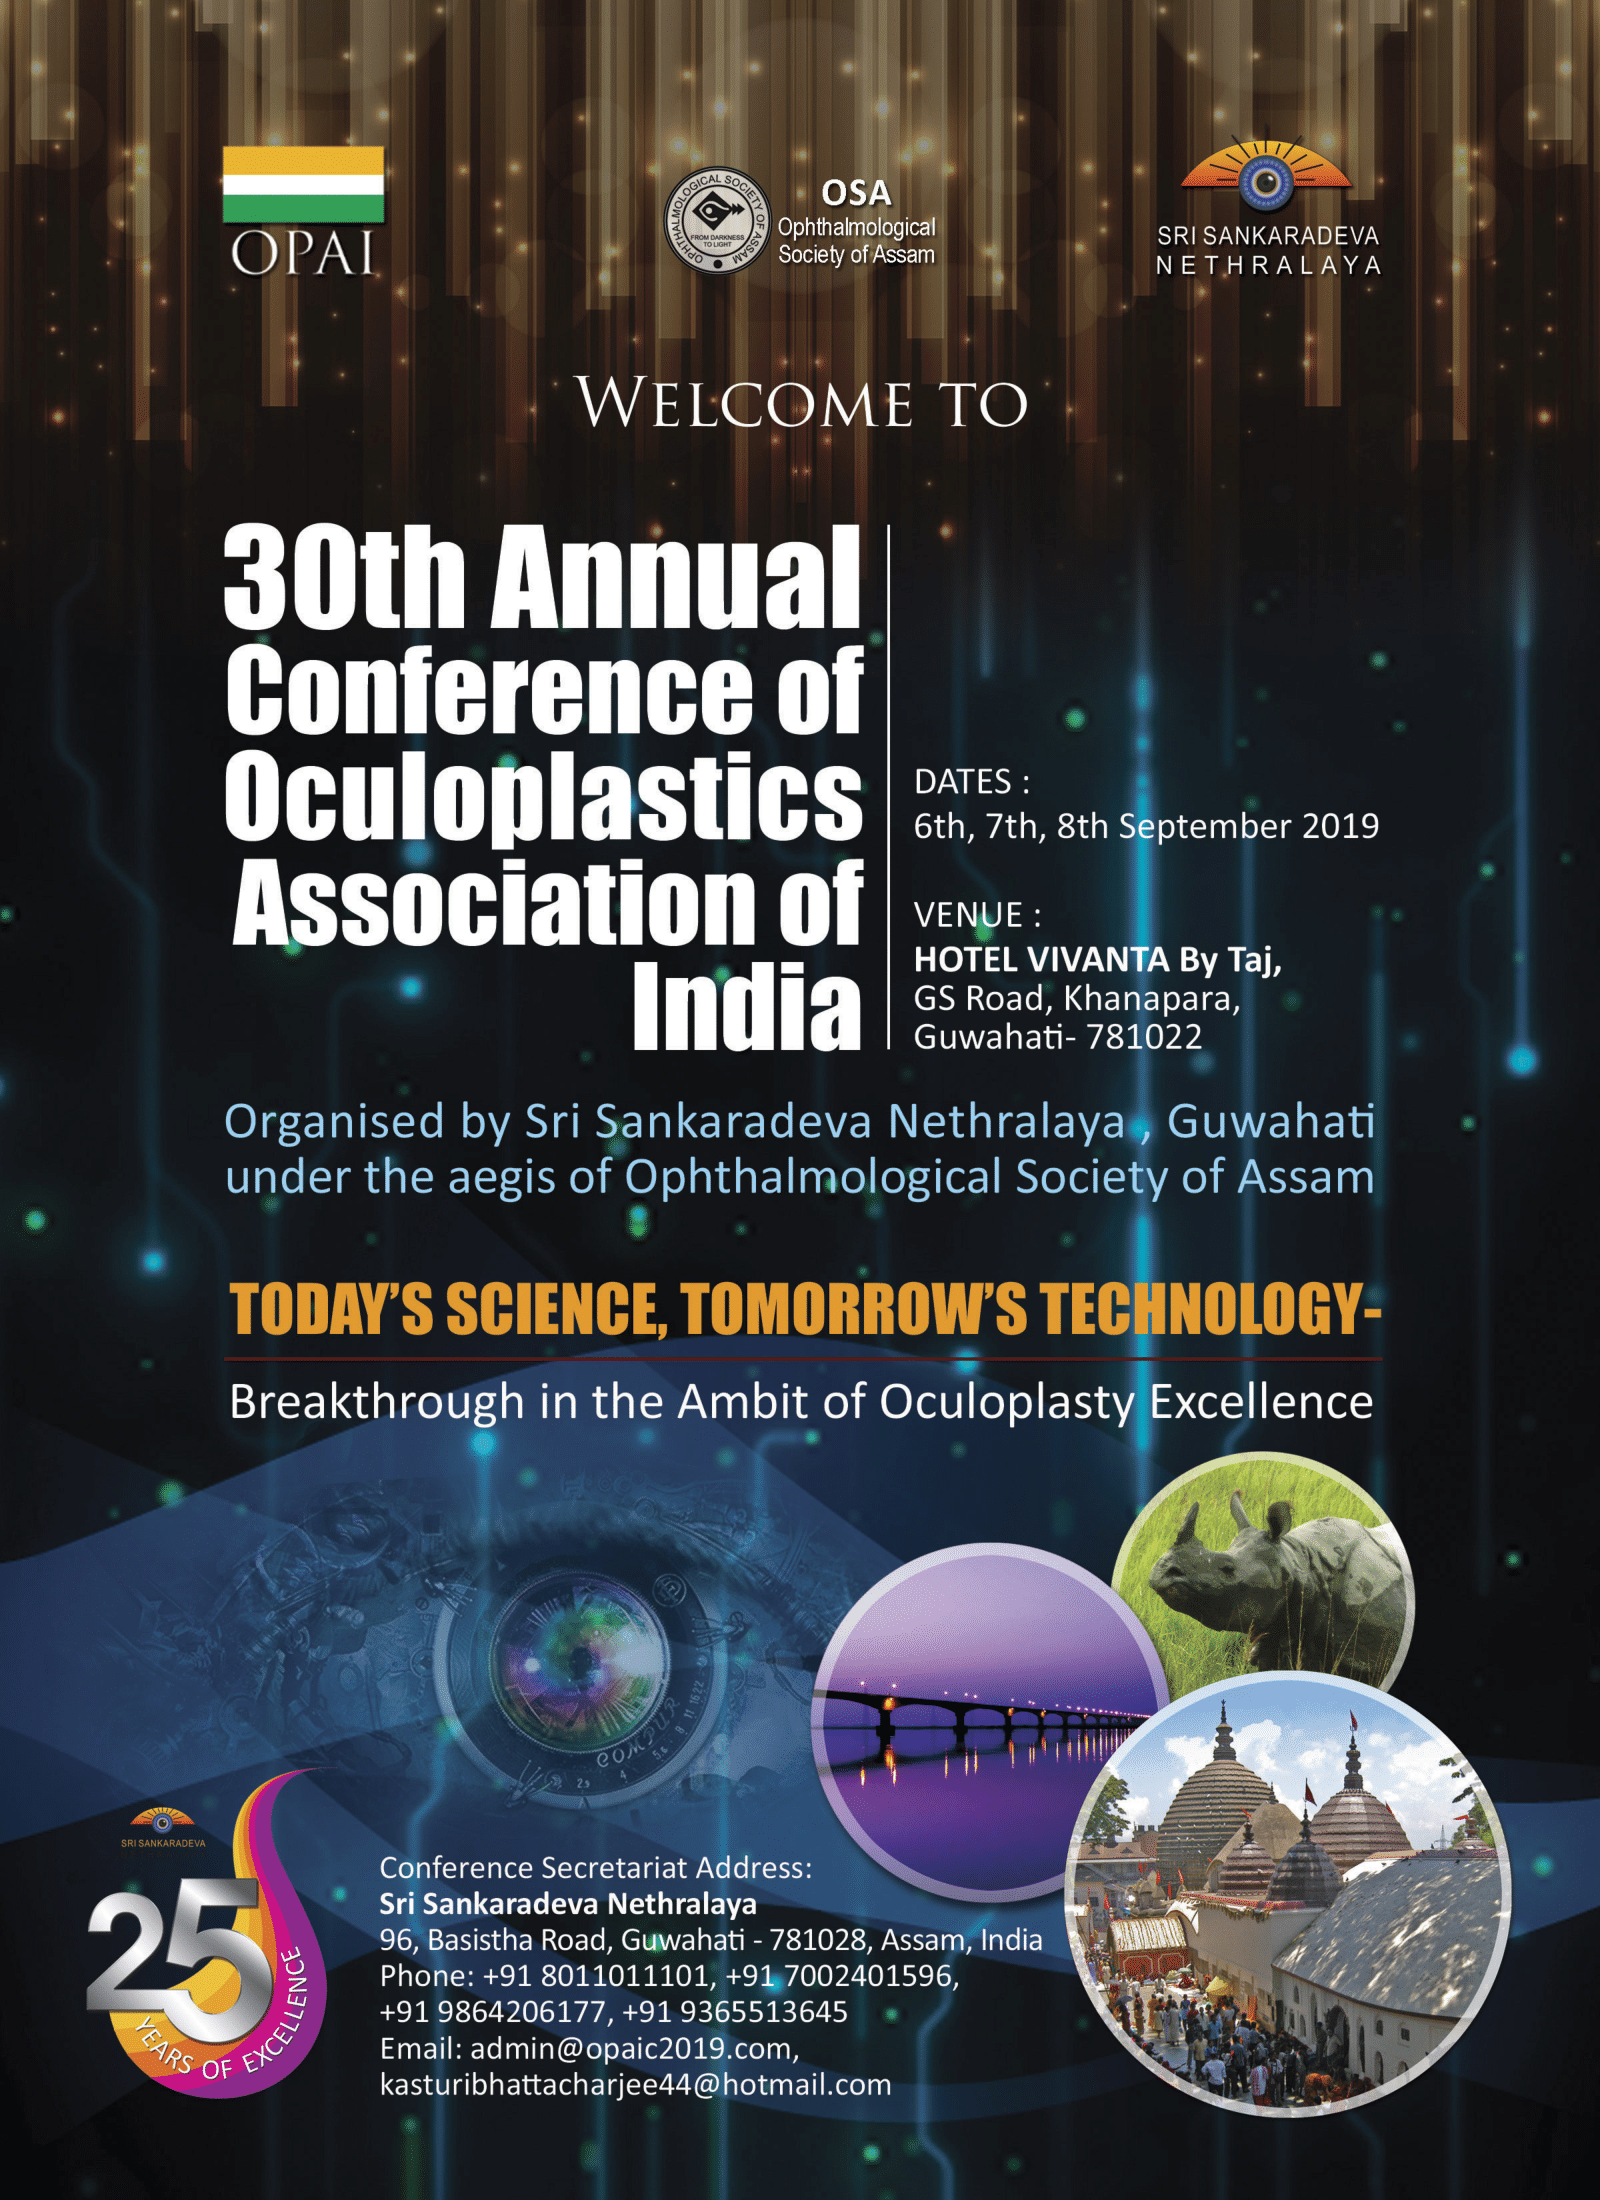 30th Annual Conference of Oculoplastics Association of India